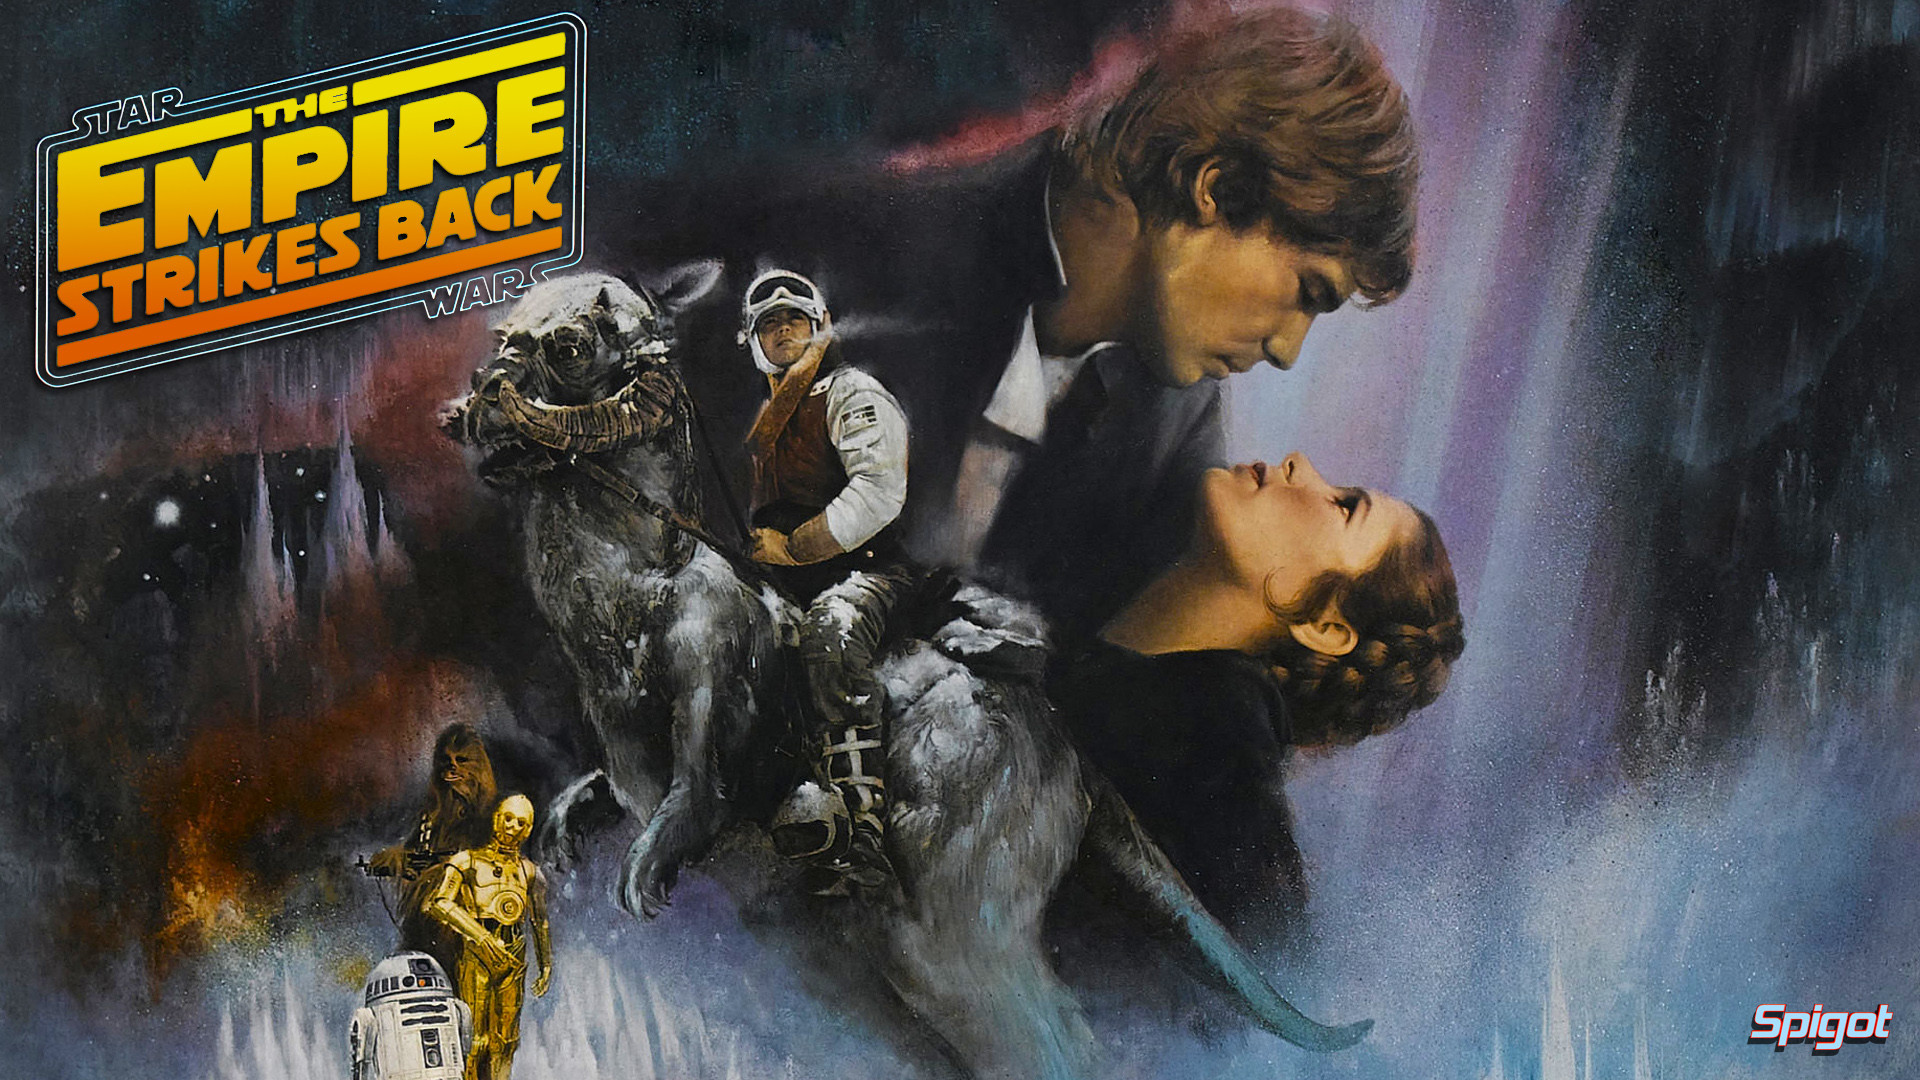 1920x1080 Empire Strikes Back - 03